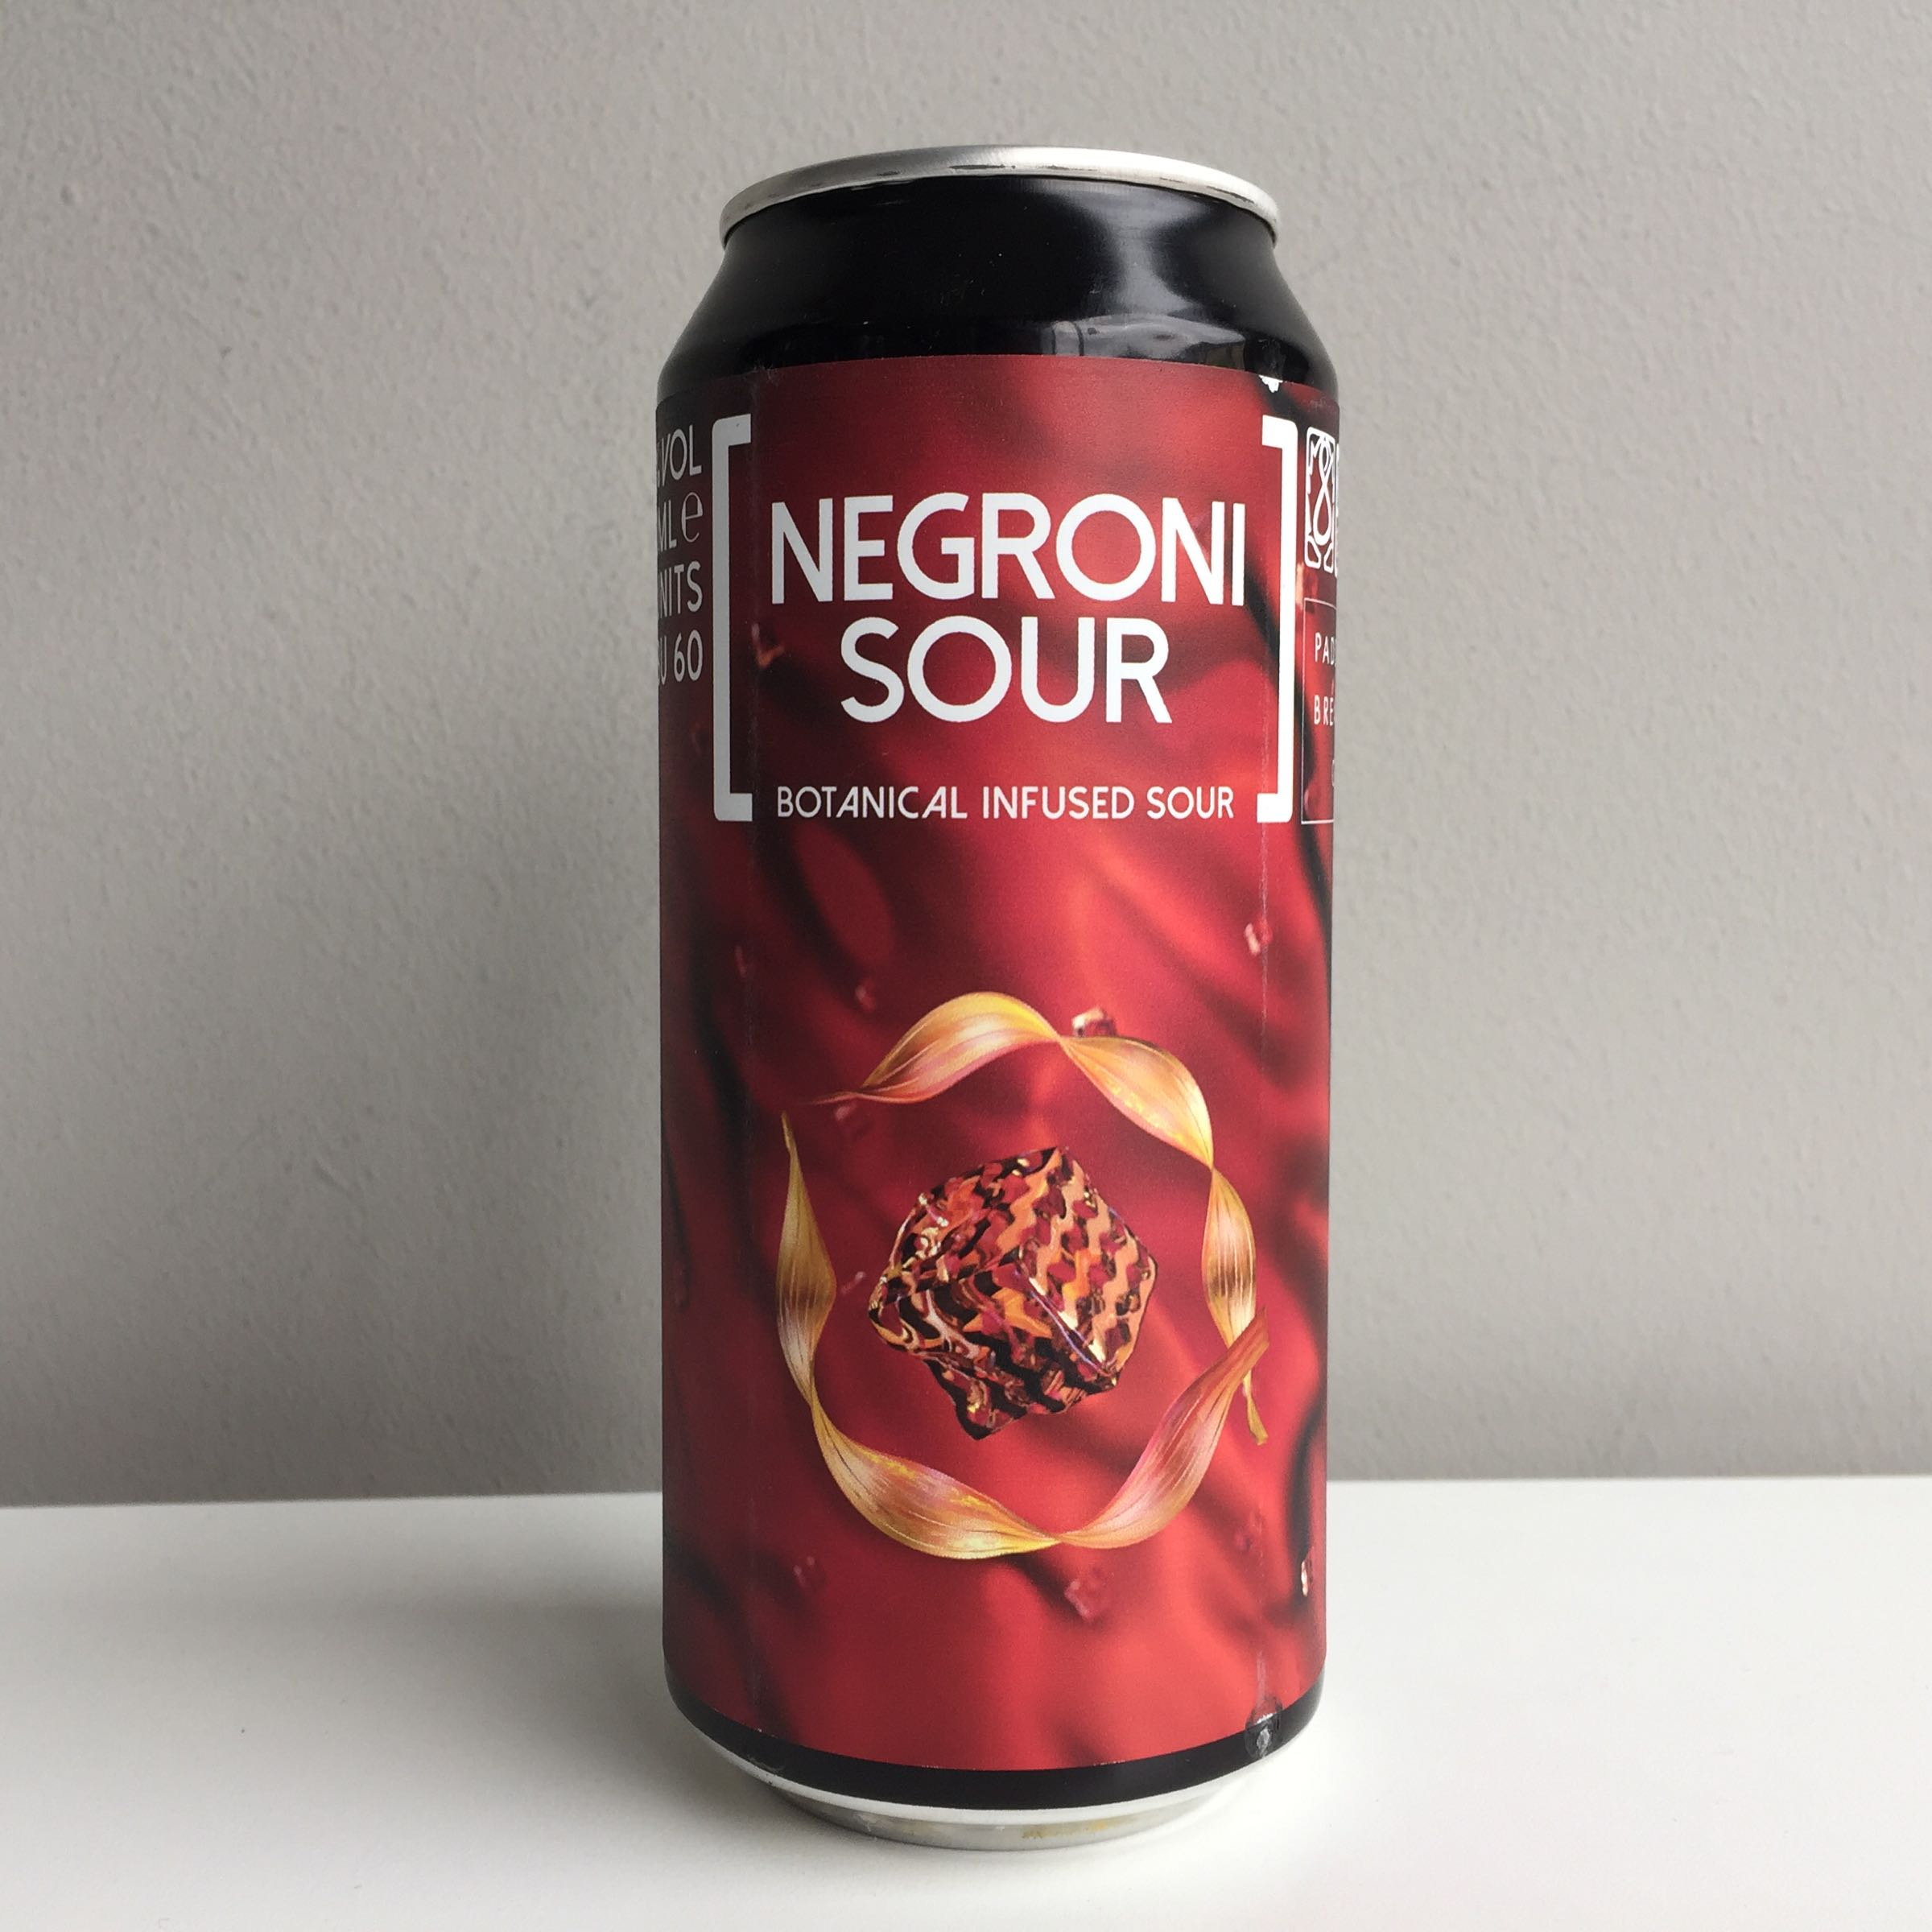 Padstow Brewing Co. 'Negroni Sour' Botanical Infused Sour 440ml